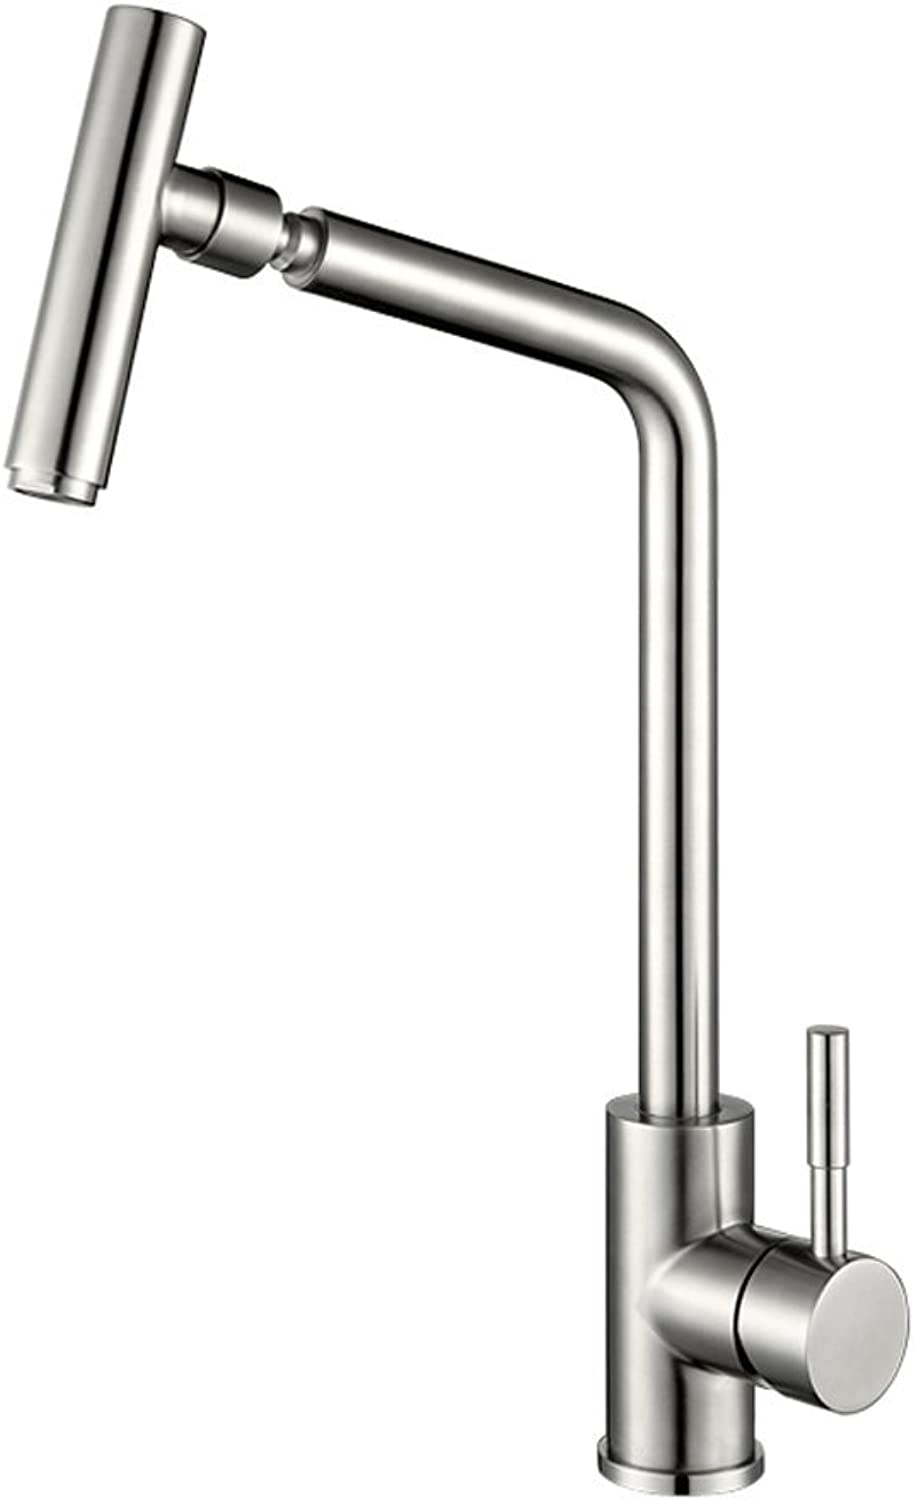 CWT Kitchen sink hot and cold water faucet 304 stainless steel Lead-free Sink faucet Brushed redatable Faucet